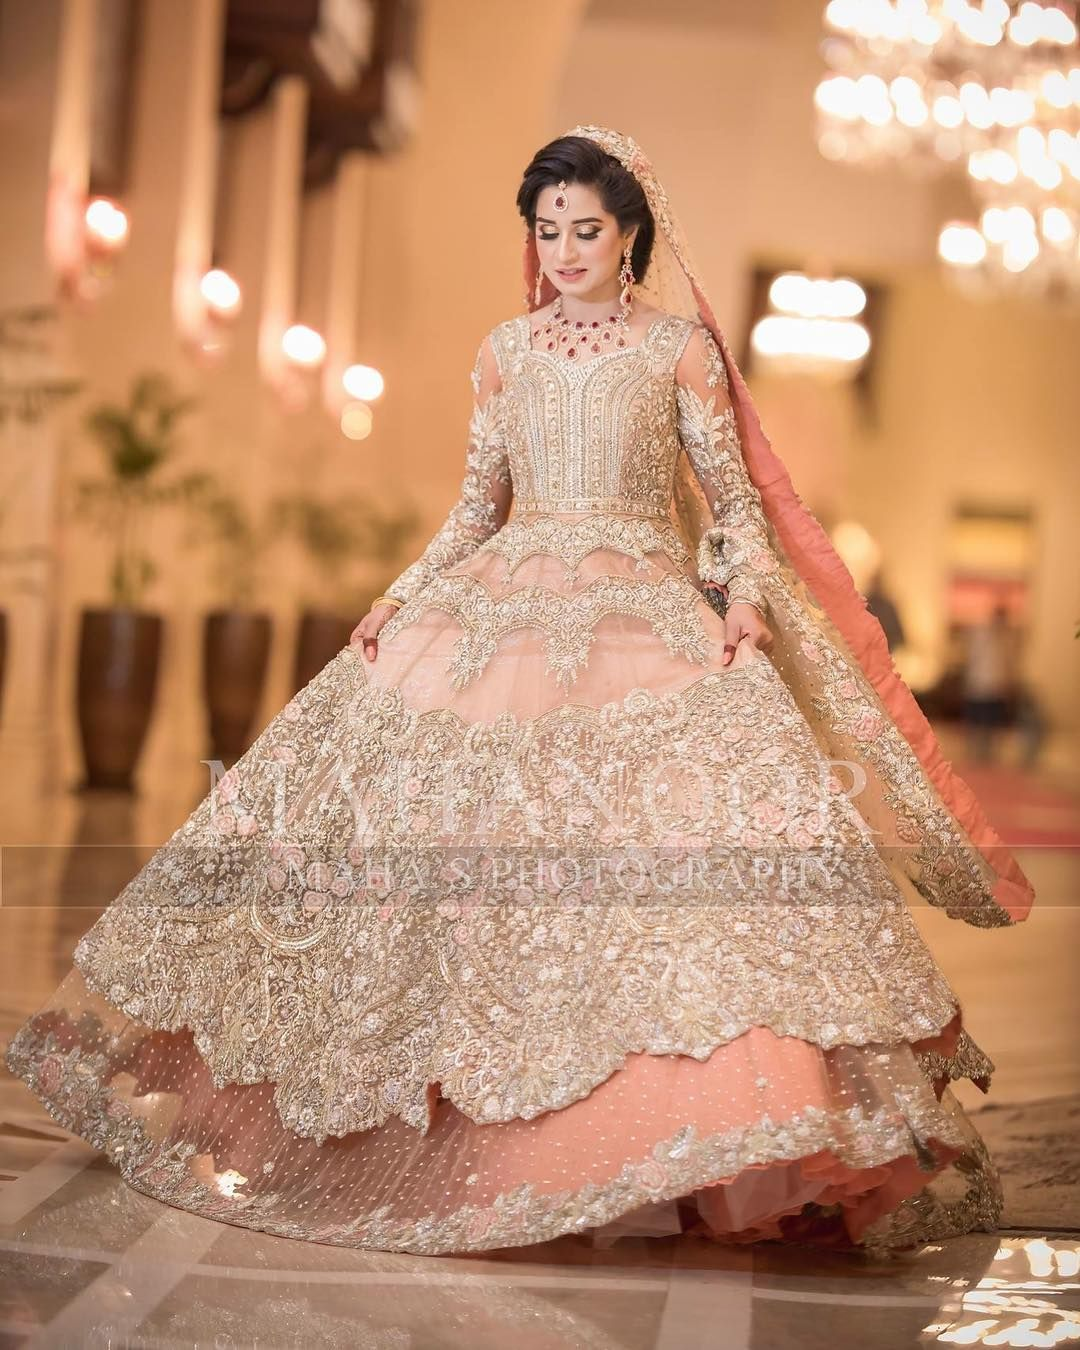 New Pakistani Bridal Dress In Light Colours 2018 19 Bridal Pakistanibridal Bridaldress Pakistani Bridal Dresses Bridal Dresses Pakistan Indian Bridal Dress